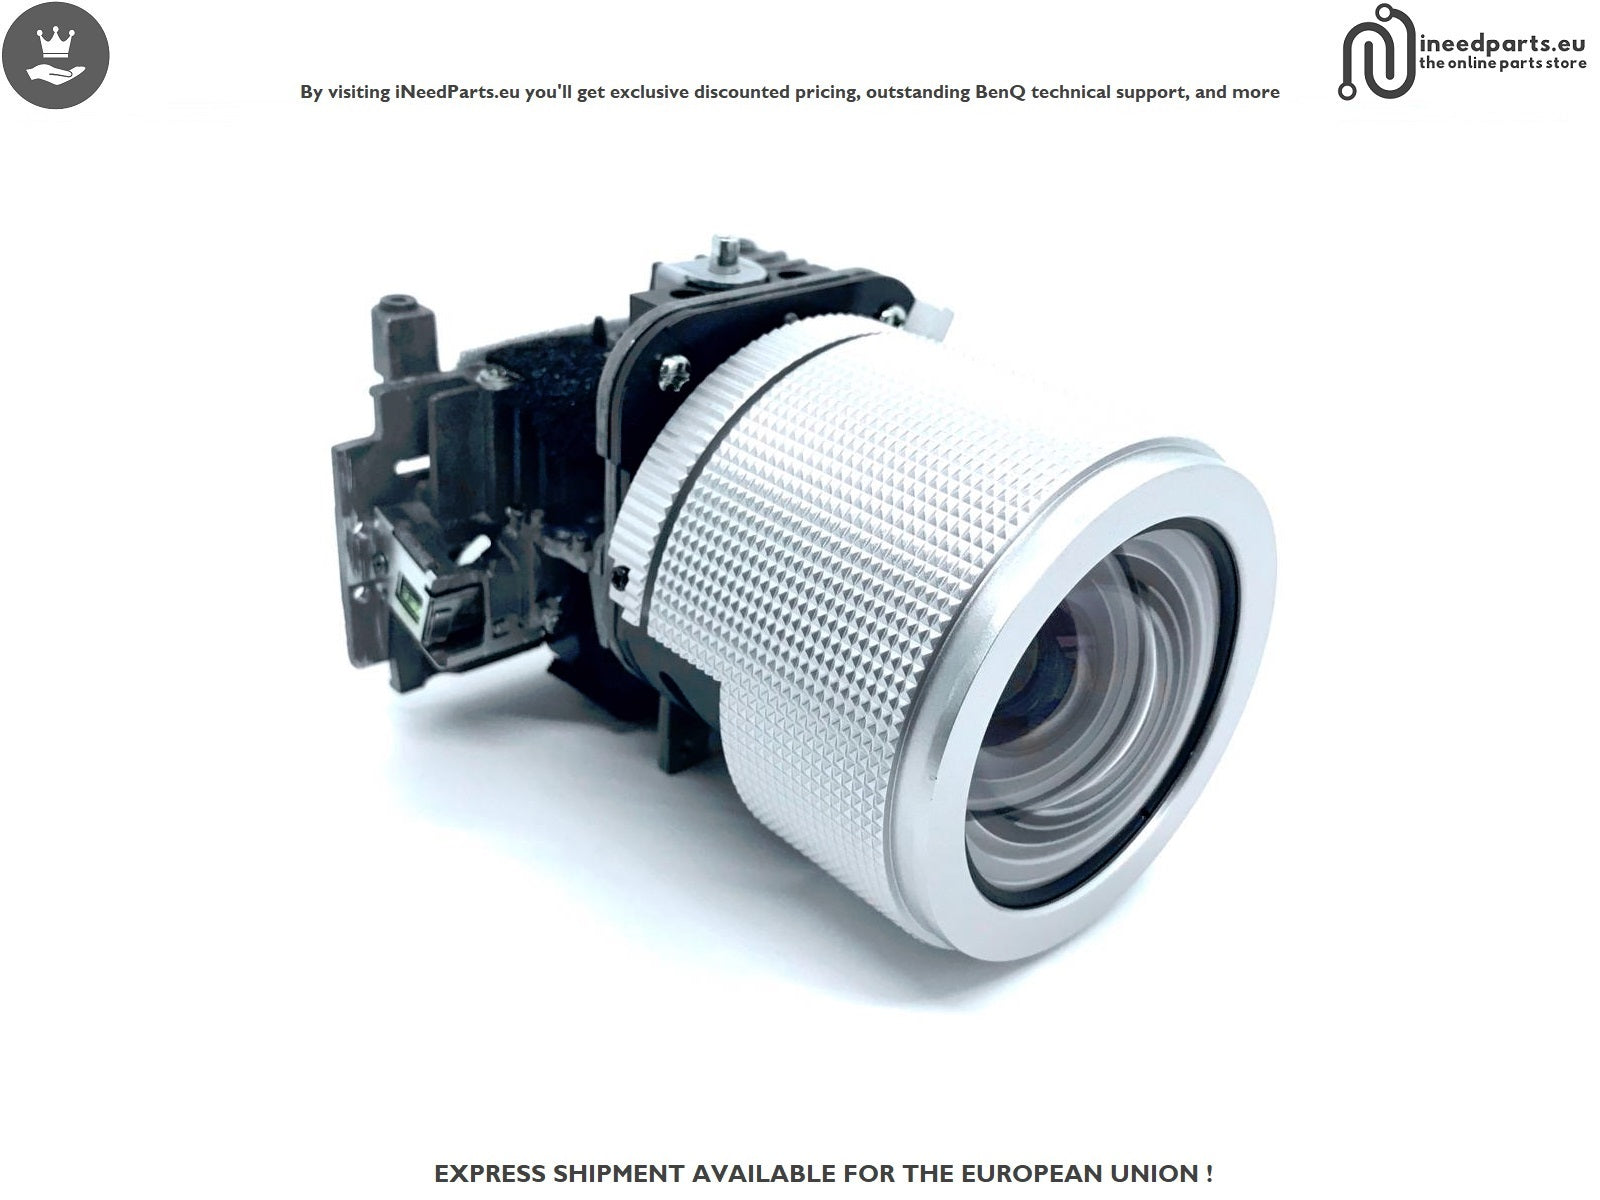 Optical Engine Assy Lens Z Zoom5 1080p for BenQ W1500